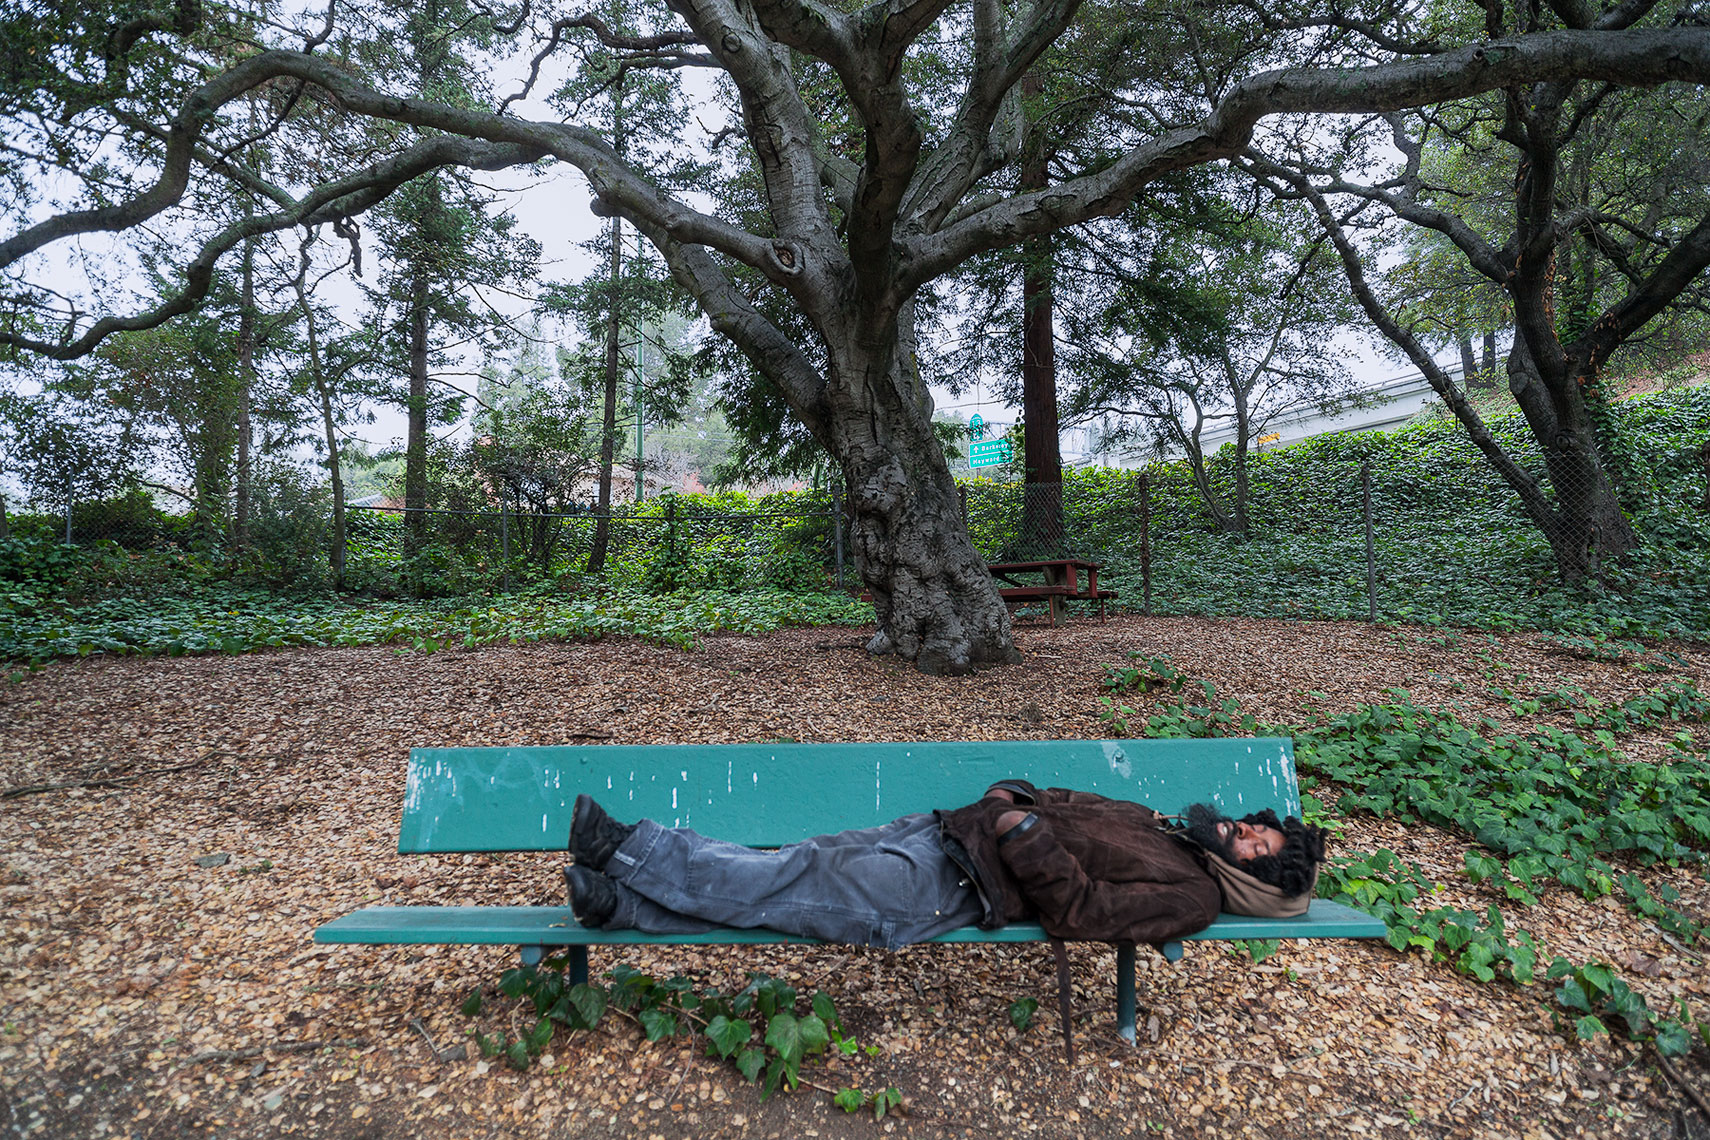 OaklandPark bench homeless sleeper, California, homeless, urban